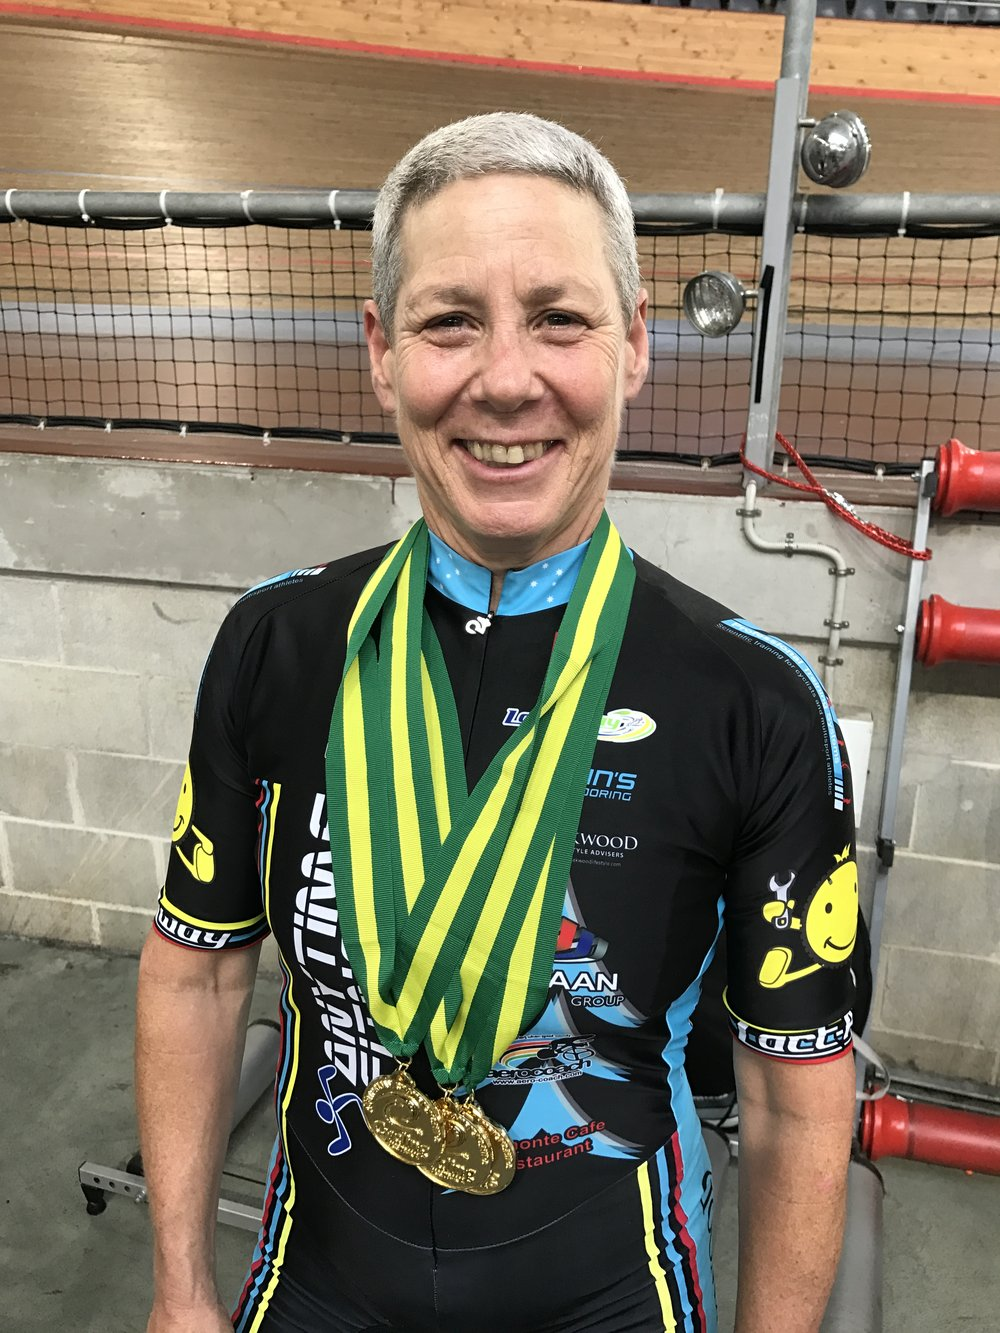 National Masters Track 2017 -Lise Benjamin took 4 Gold medals (Sprint, ITT, Scratch, Teams Pursuit) plus awarded the W7 Champion of Champions & 2 World Records